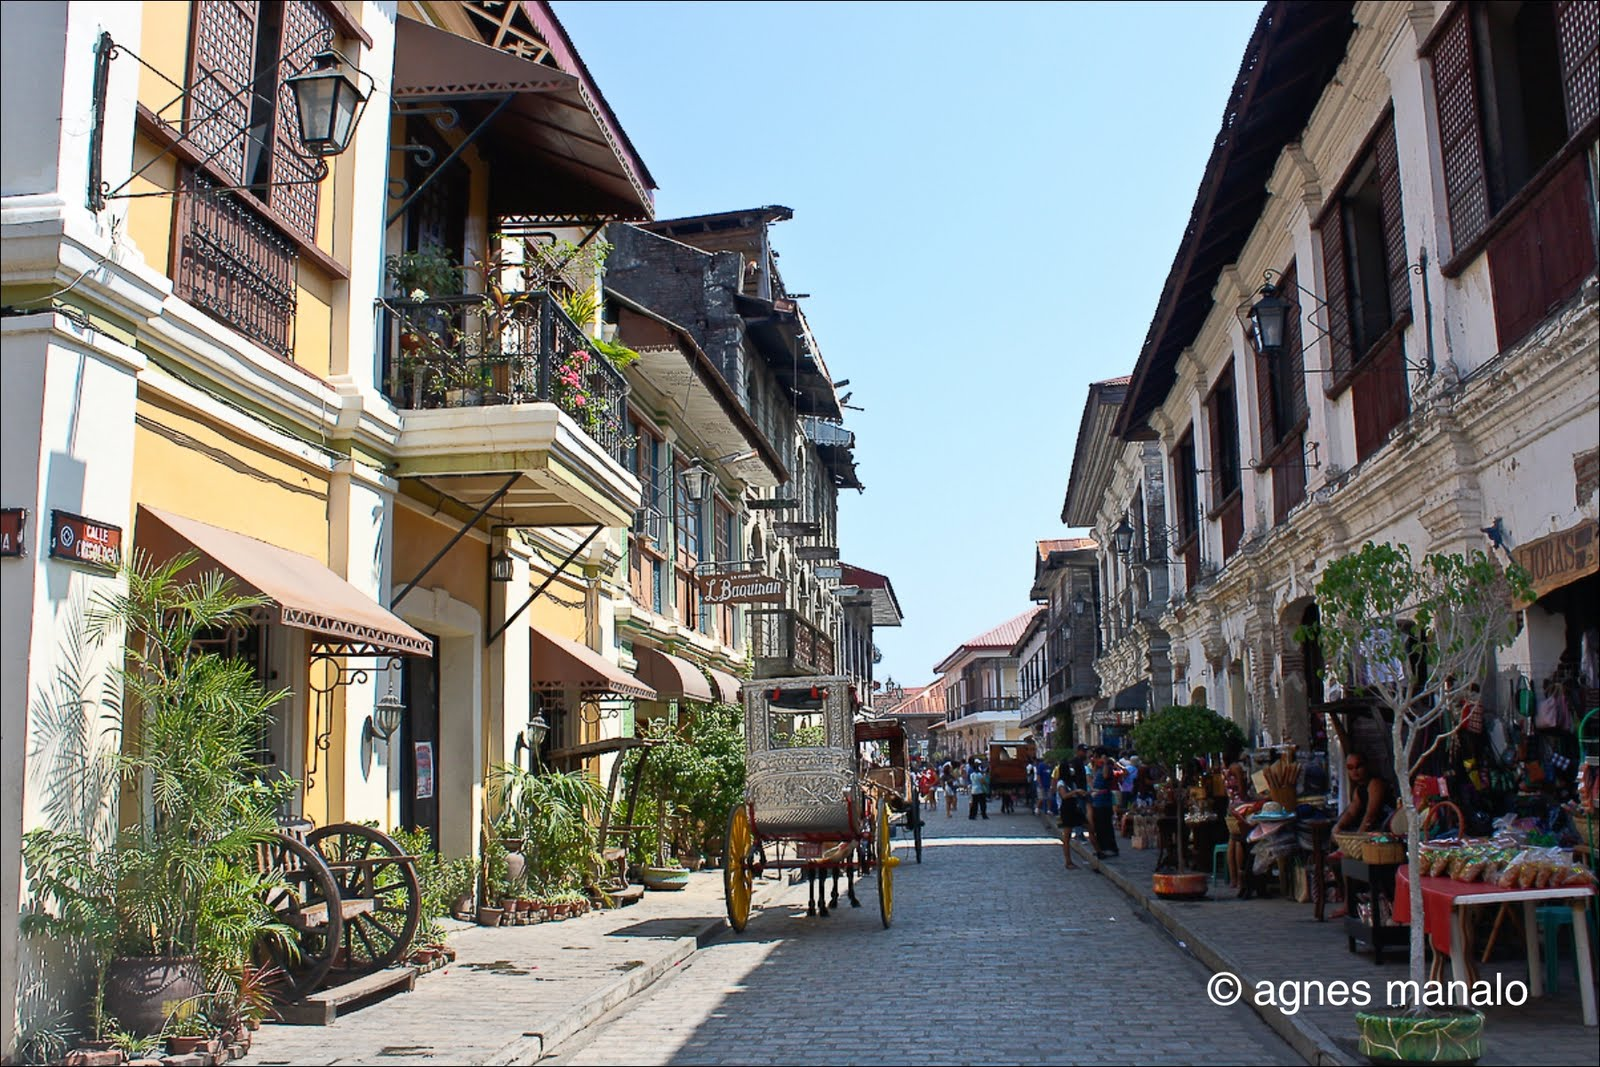 Image of Calle Crisologo, a street most photographed by tourists -localand foreign